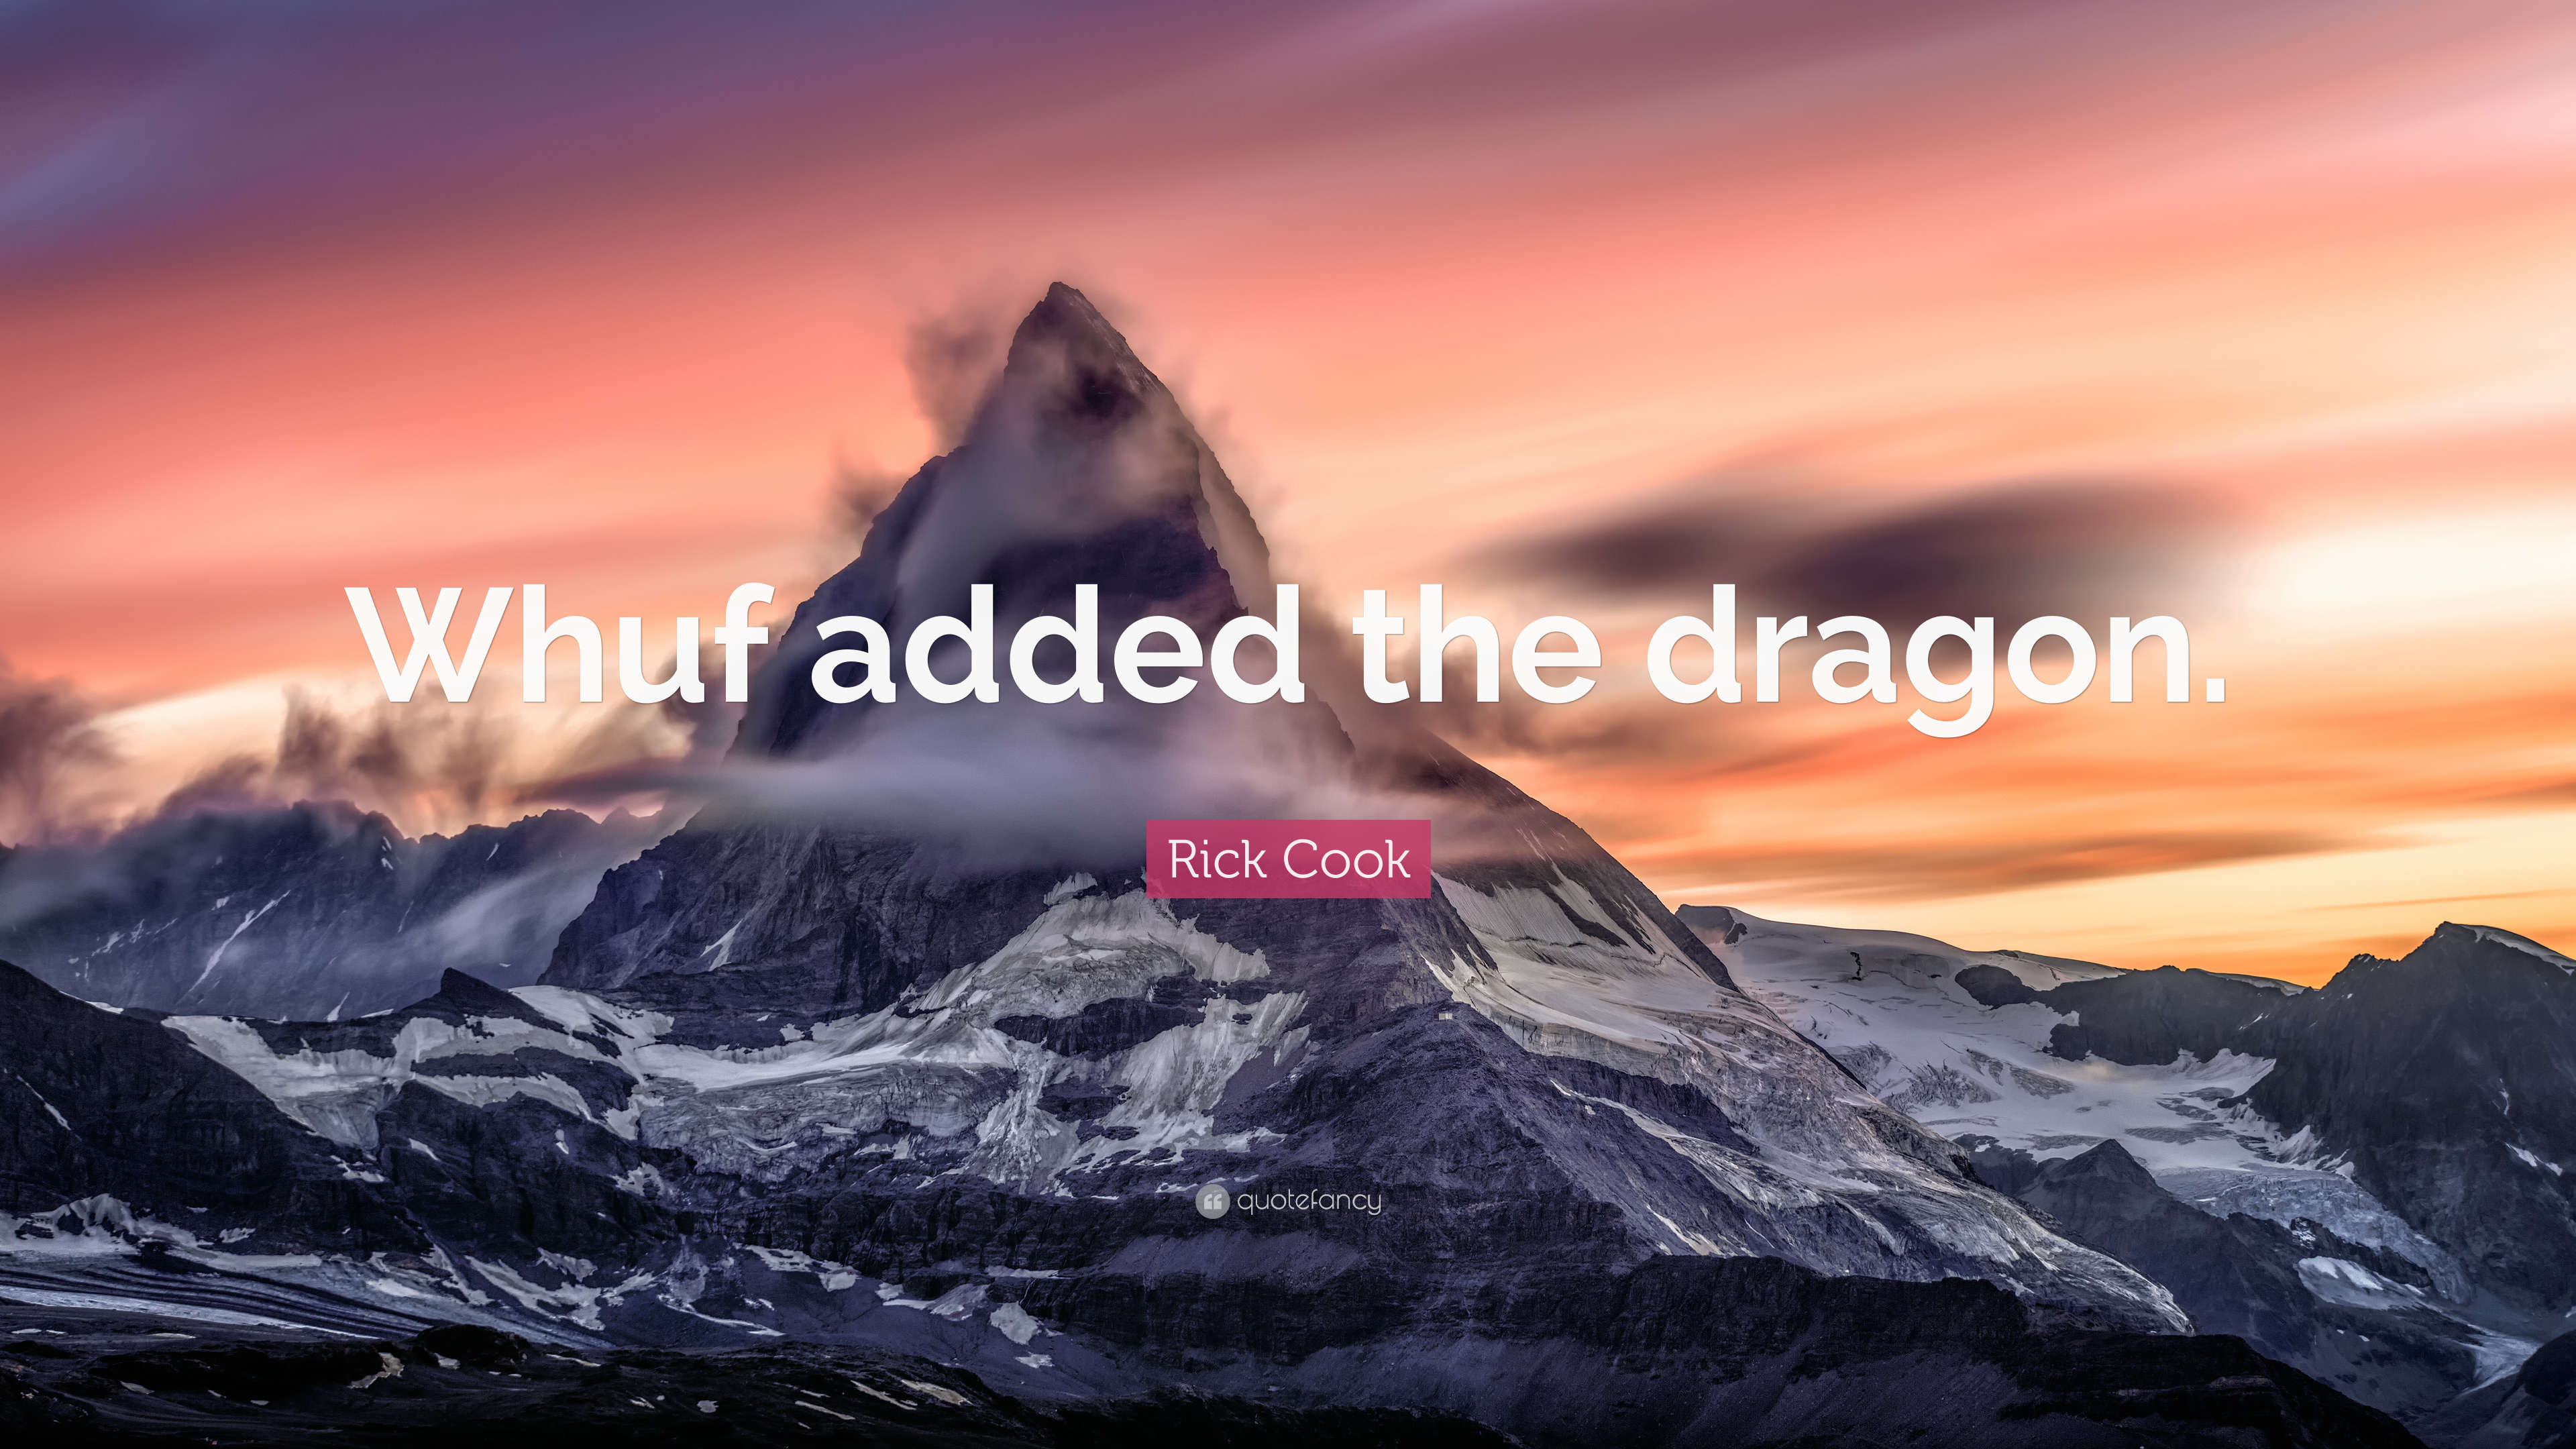 Great Wallpaper Mountain Dragon - 2785492-Rick-Cook-Quote-Whuf-added-the-dragon  Trends_397786.jpg